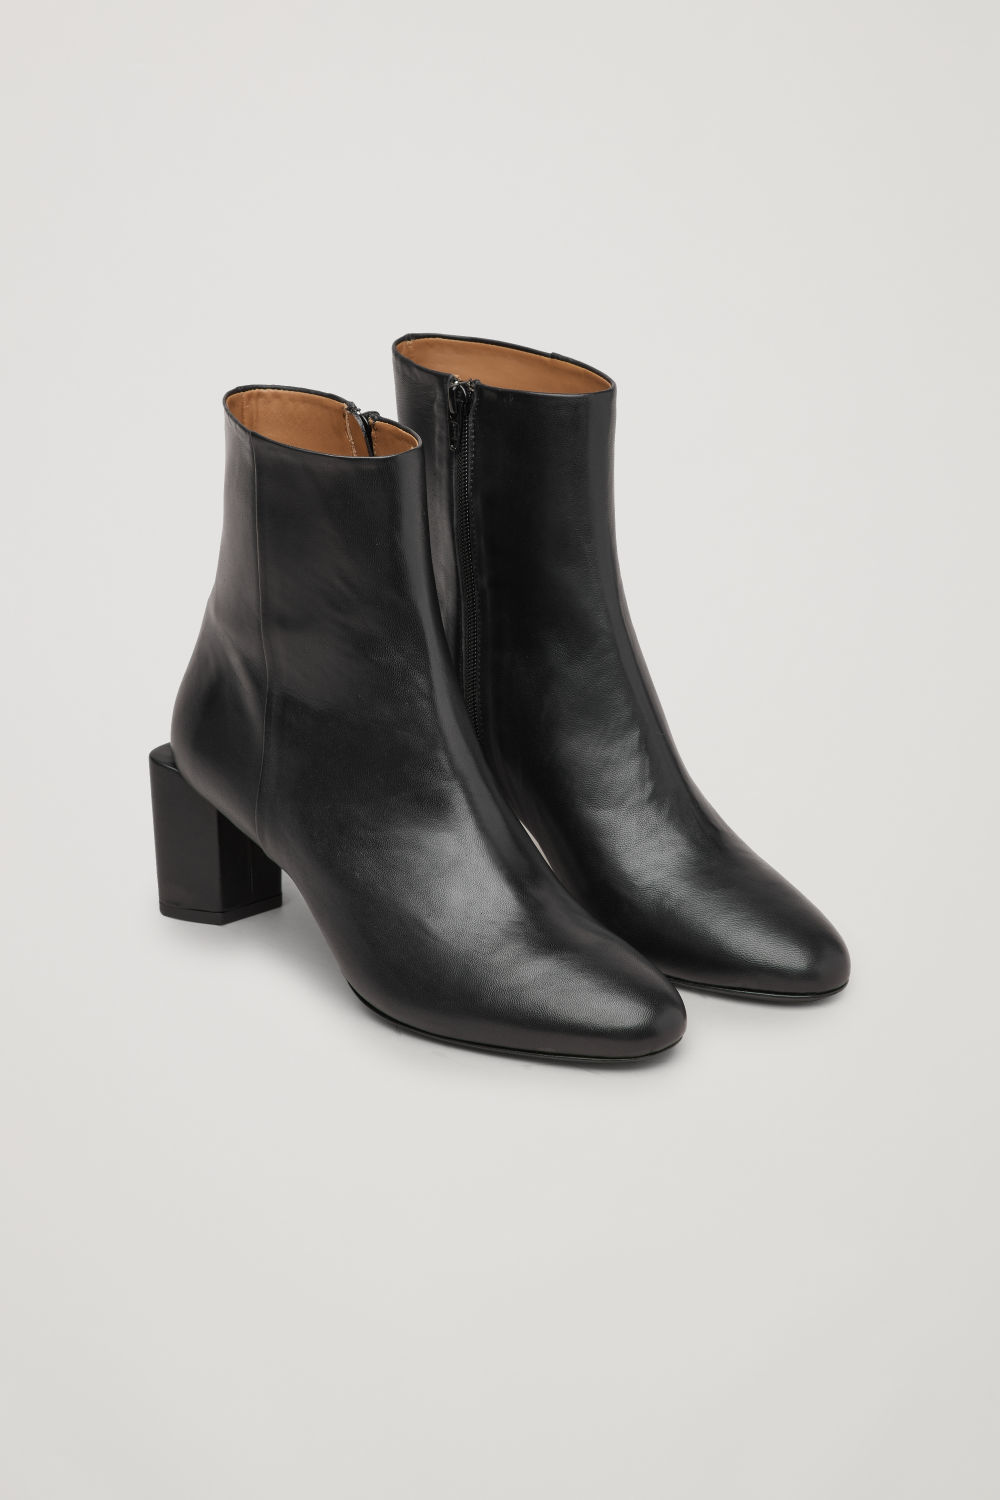 SCULPTURAL LEATHER ANKLE BOOTS